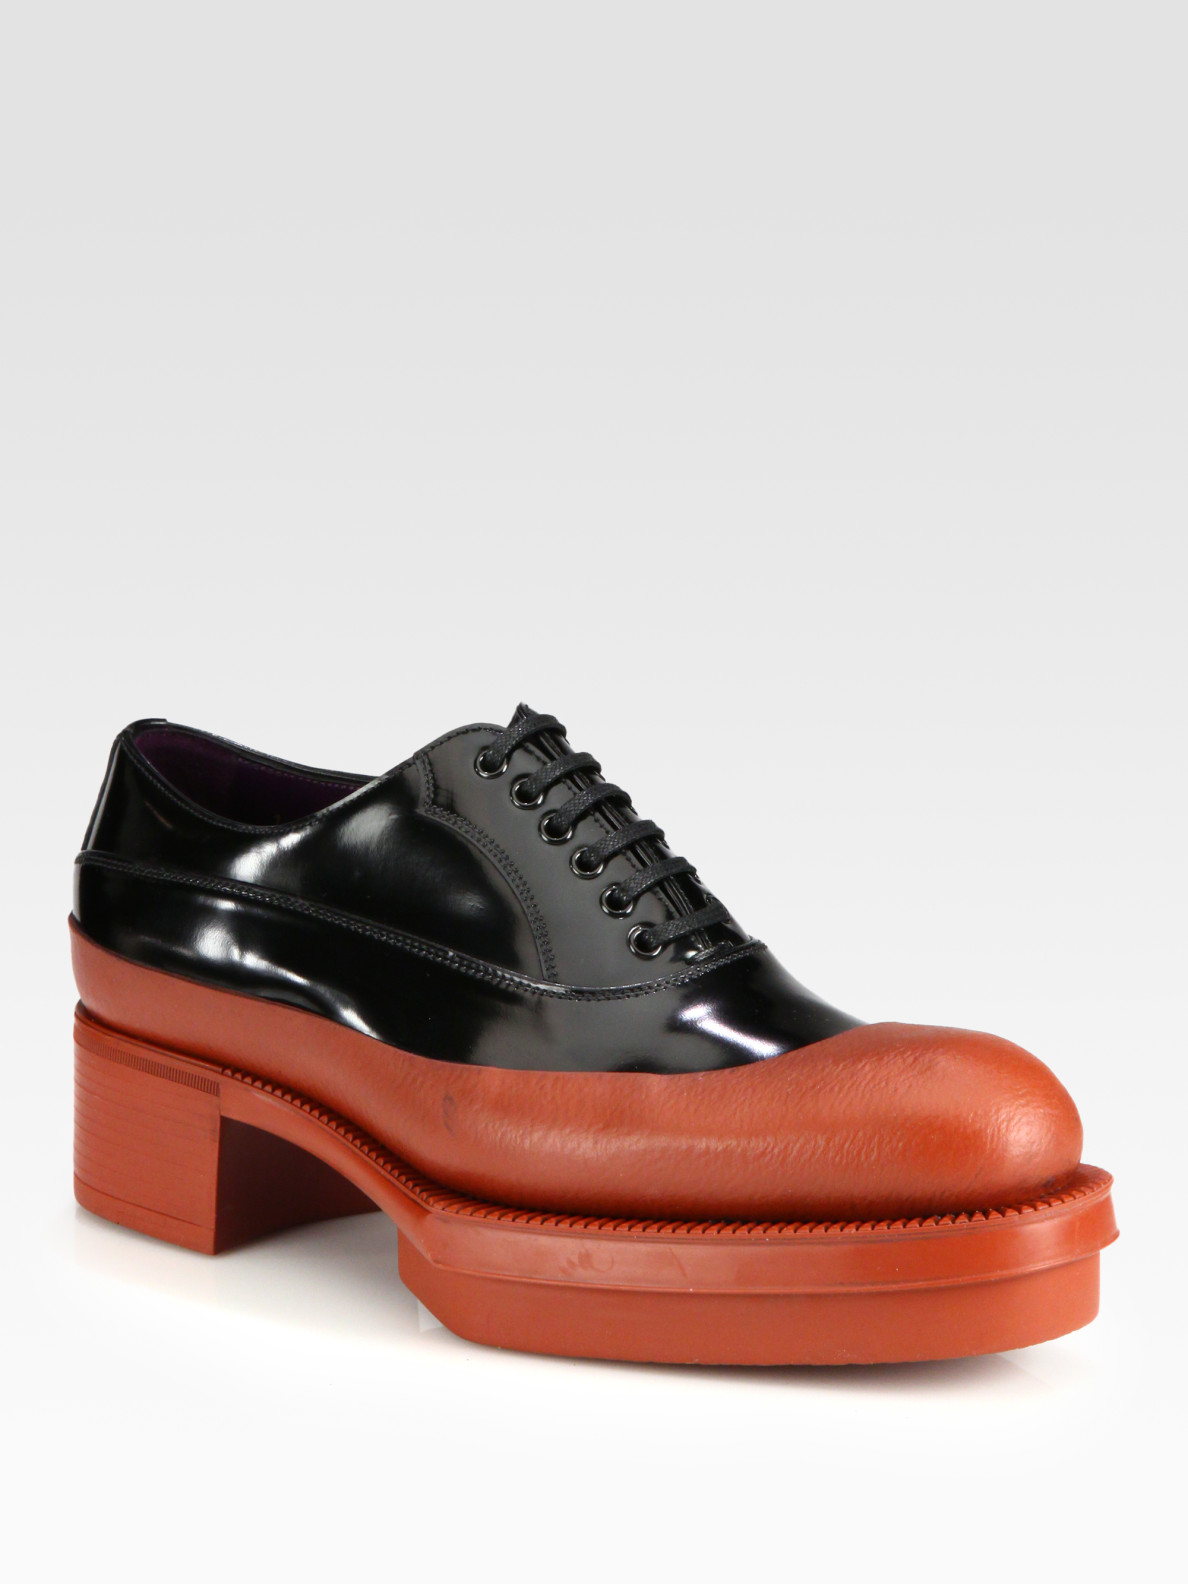 Prada Patent Leather Leather Laceup Platform Loafers in Brown ...